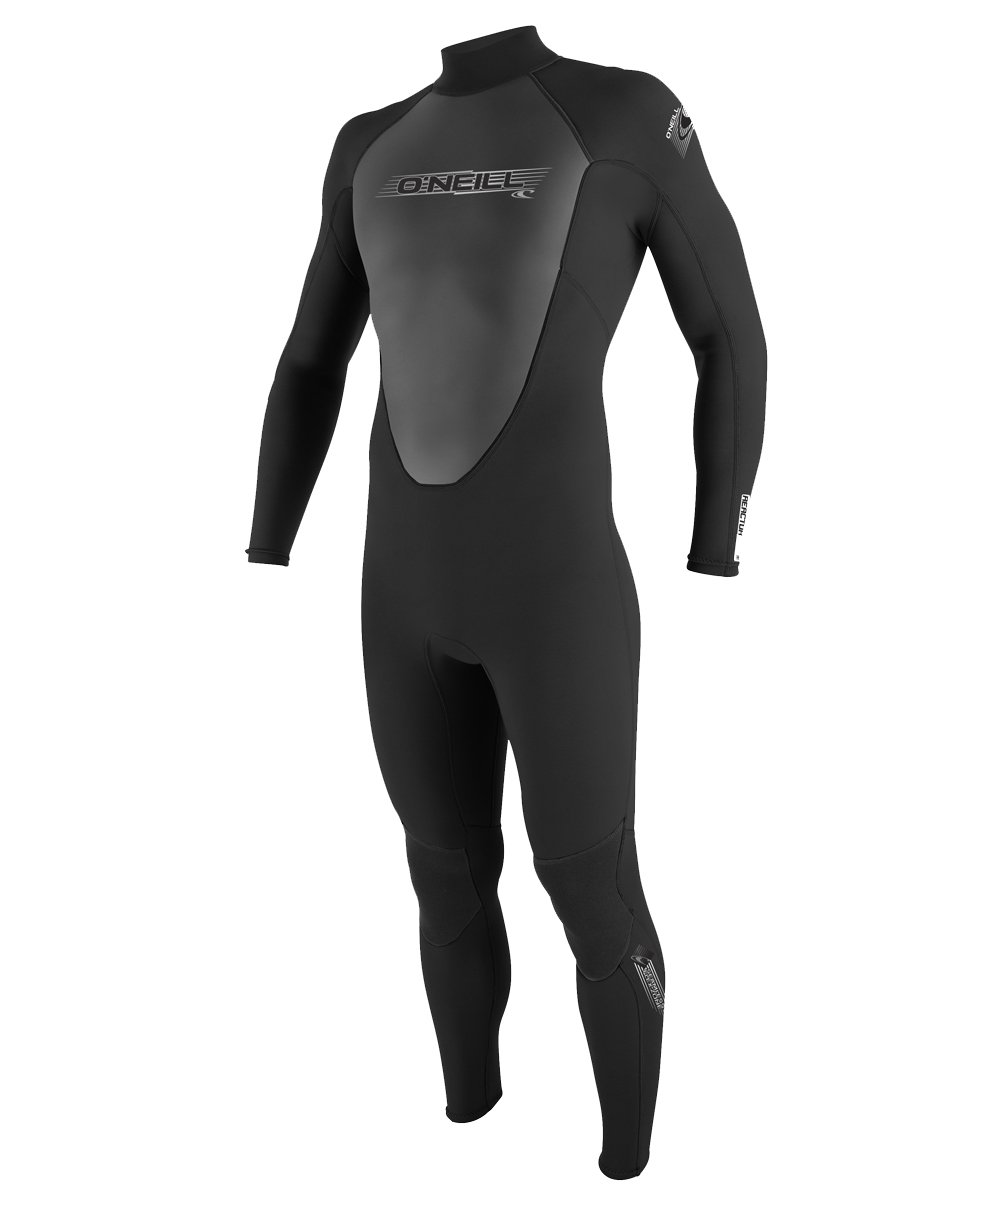 O'Neill Wetsuits Wetsuits Mens 3/2mm Reactor Full Suit, Black, X-Small